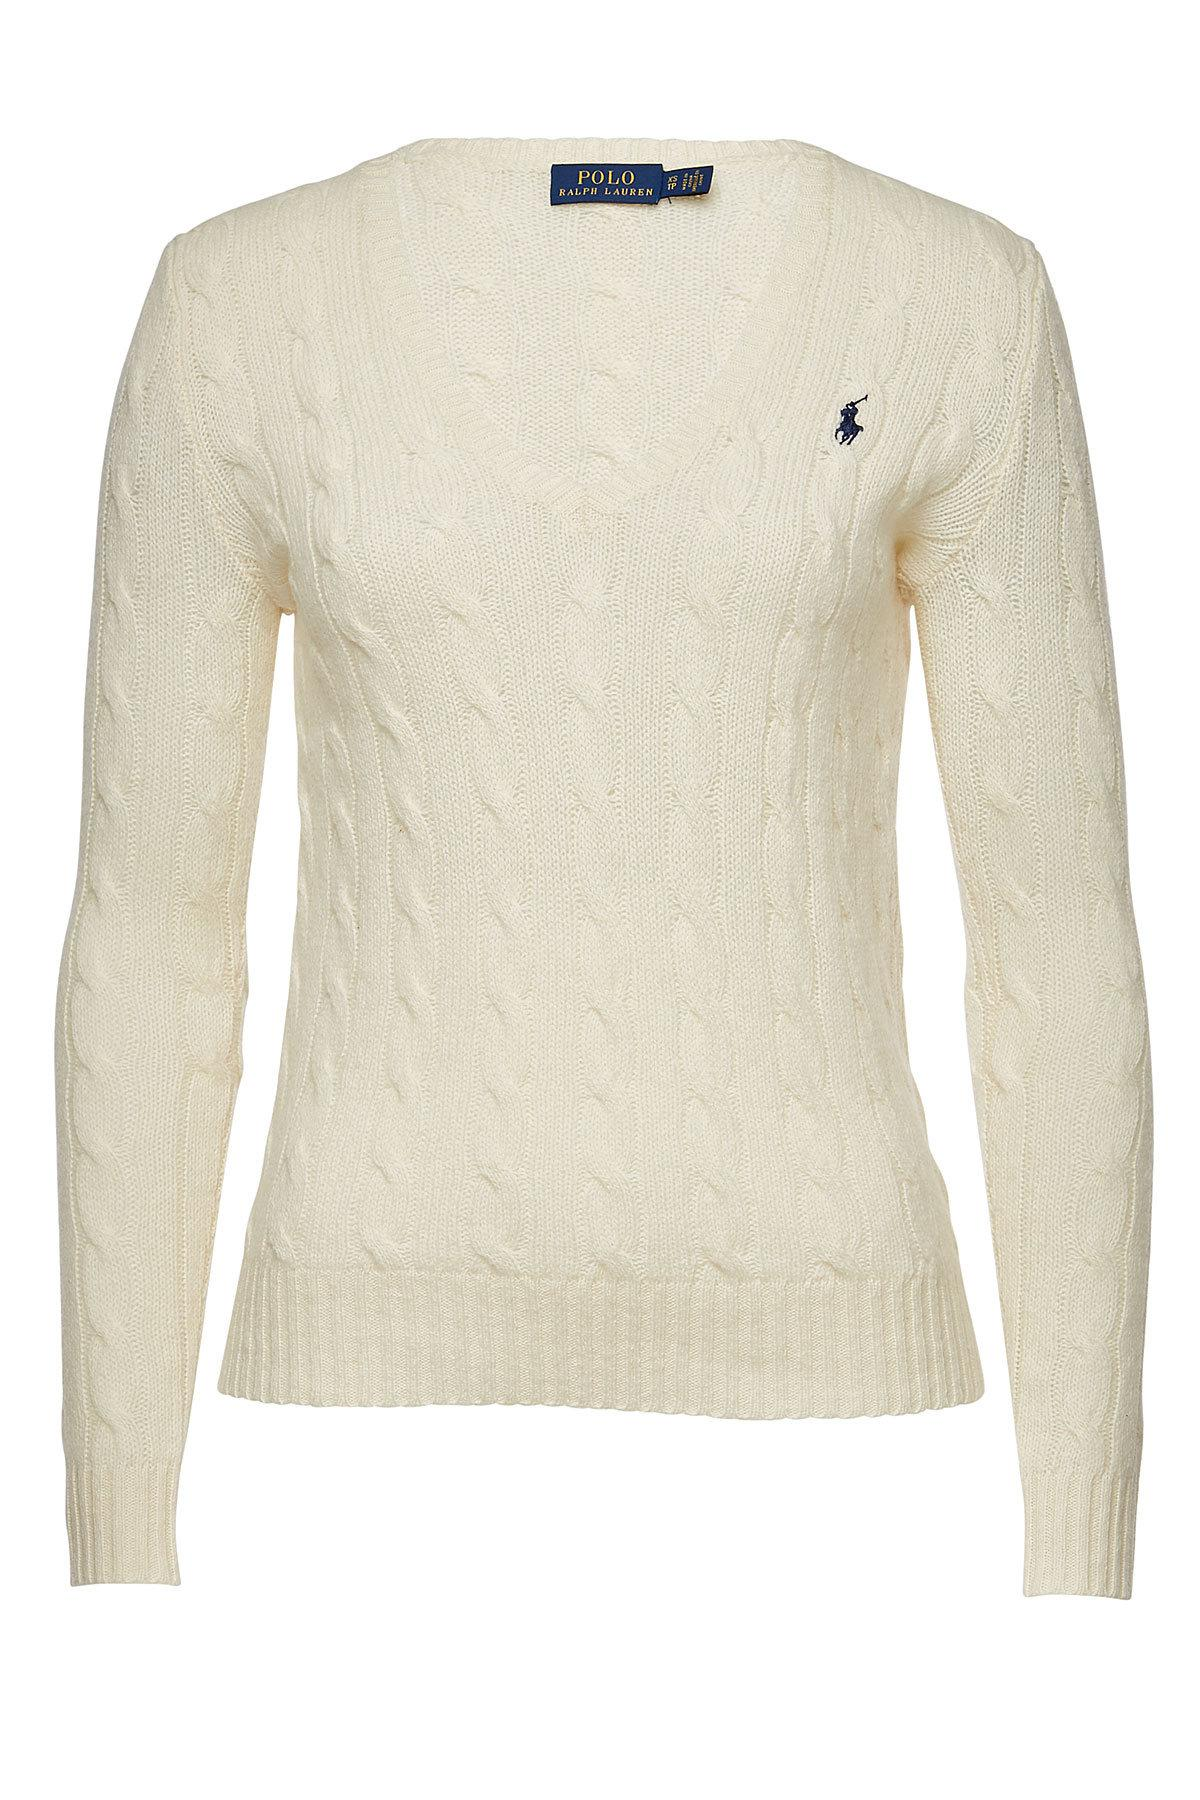 40d888f34355ee Polo Ralph Lauren - Natural Kimberly Merino Wool Pullover With Cashmere -  Lyst. View fullscreen